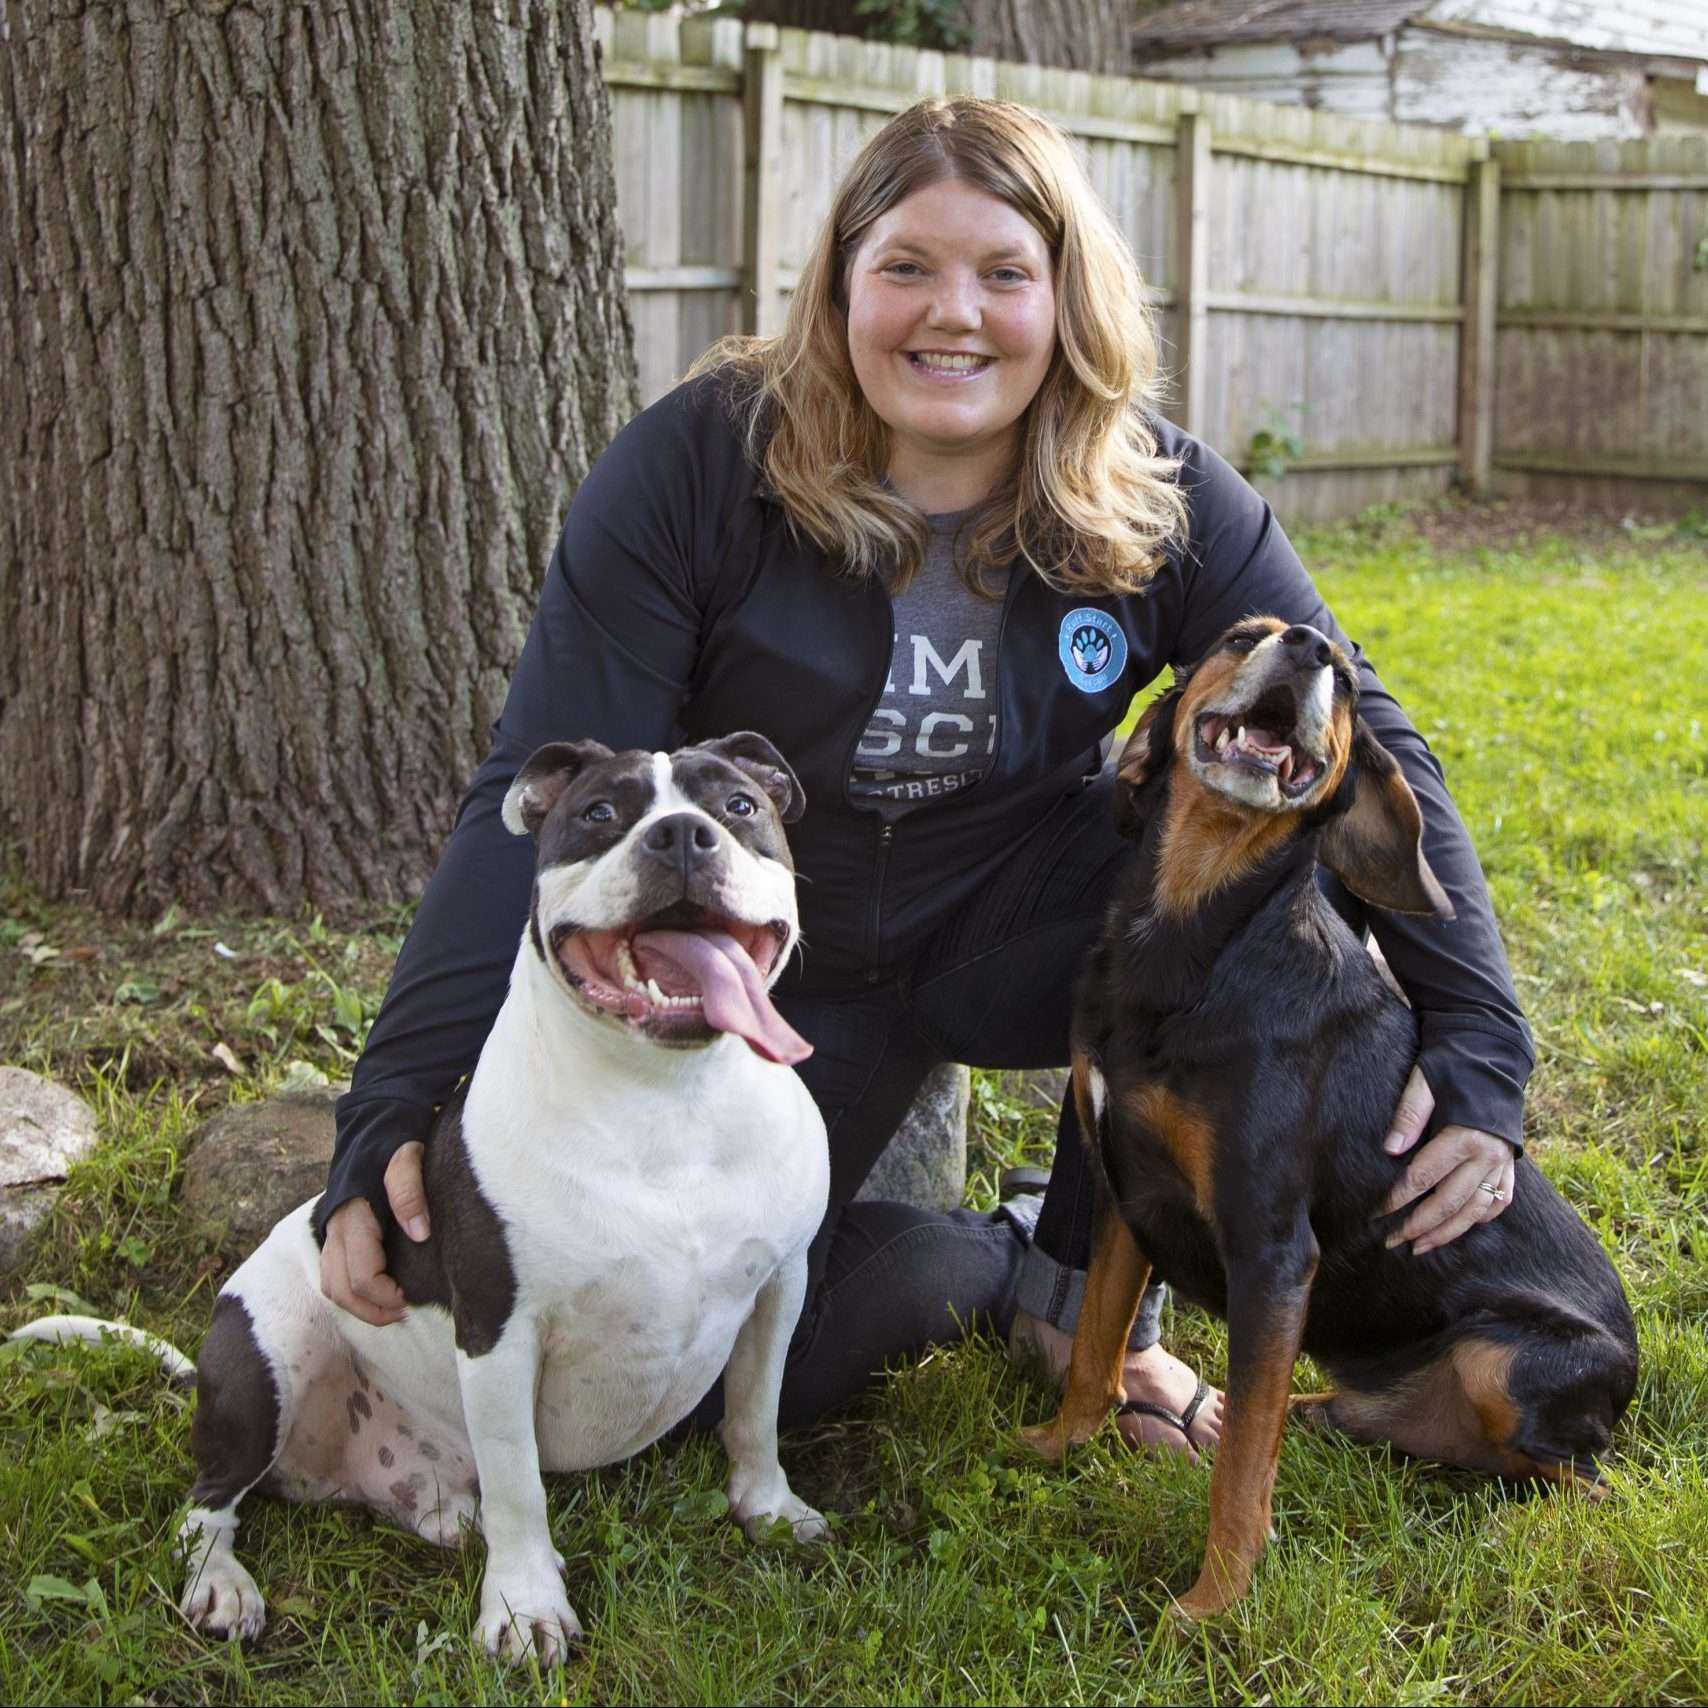 Julie Olson poses with two dogs